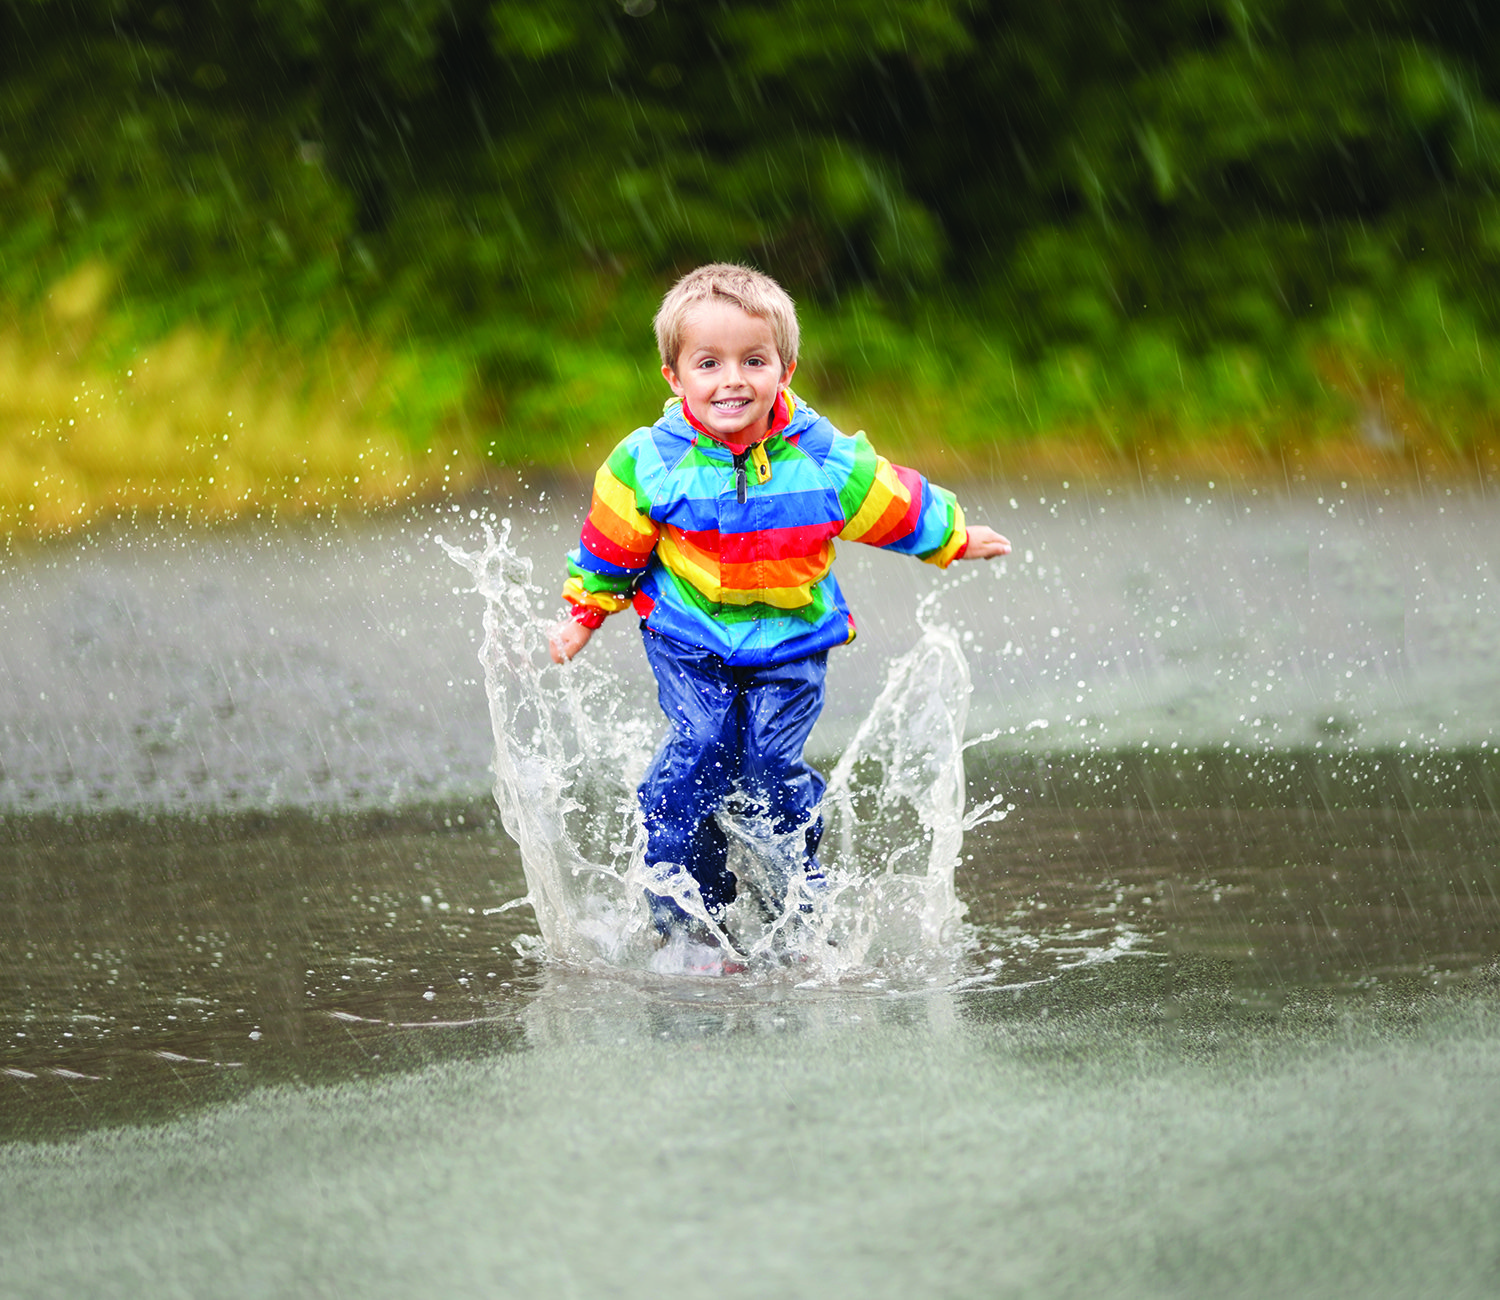 Rainy Day Vacation Fun for Families